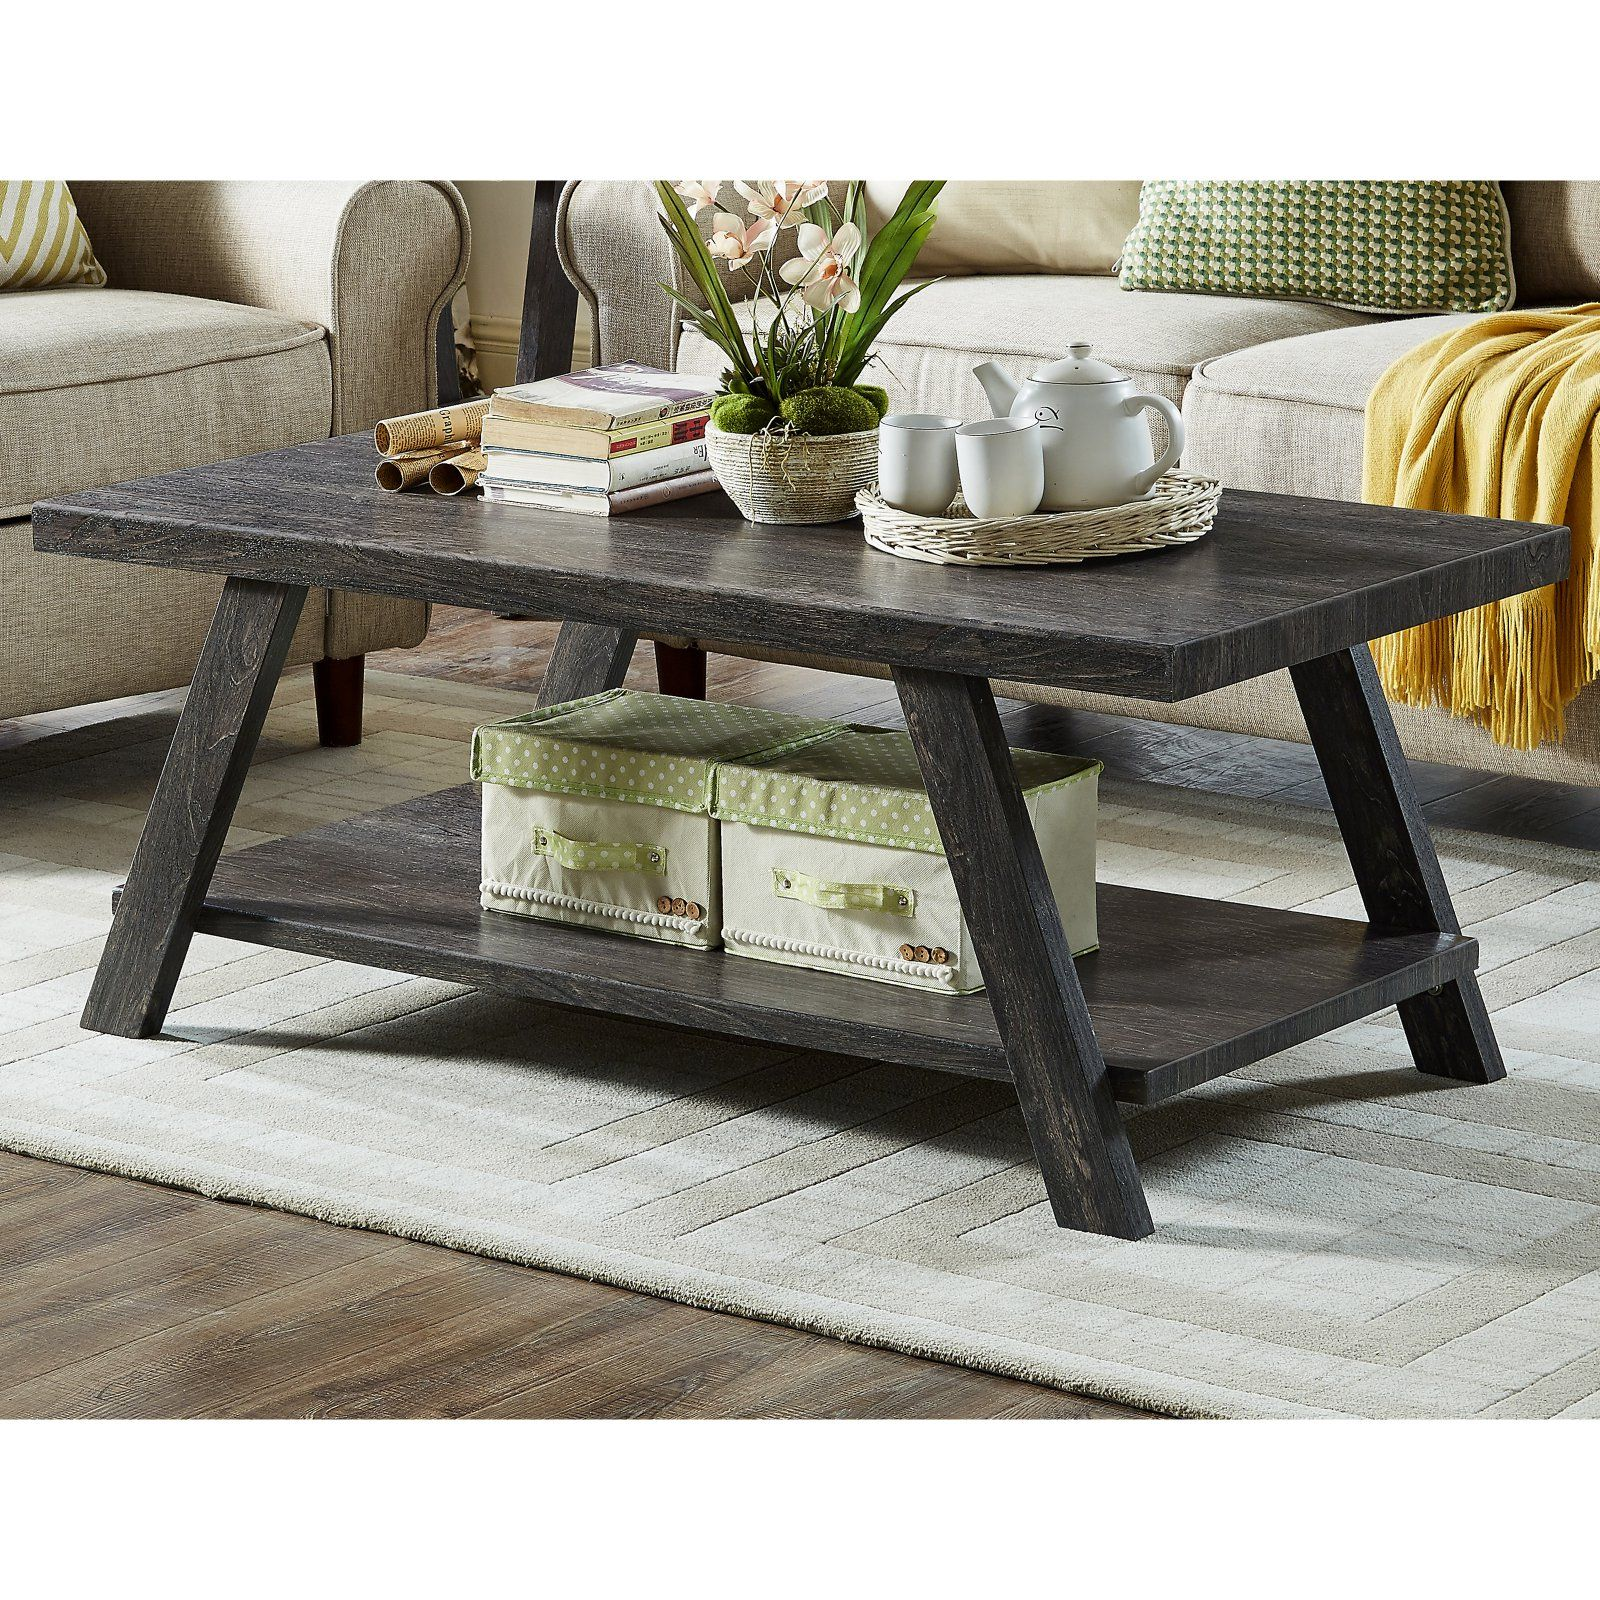 Roundhill Furniture Athens Contemporary Replicated Wood Shelf Coffee Table In 2021 Coffee Table Distressed Wood Coffee Table Wood Shelves [ 1600 x 1600 Pixel ]